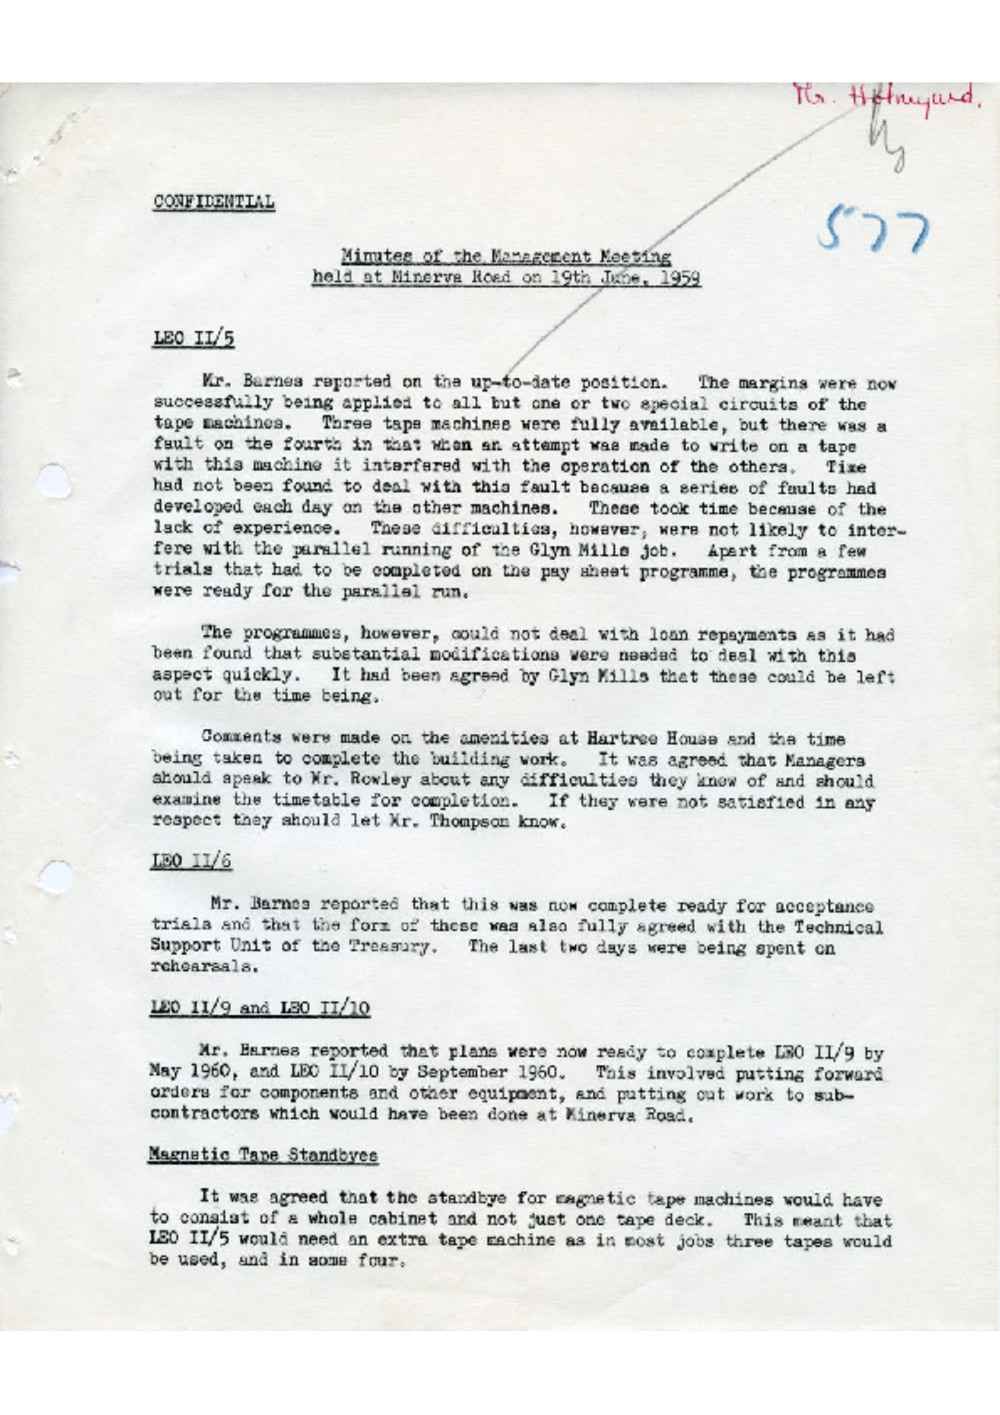 Article: 54594 LEO Management Meeting, 19/6/1959